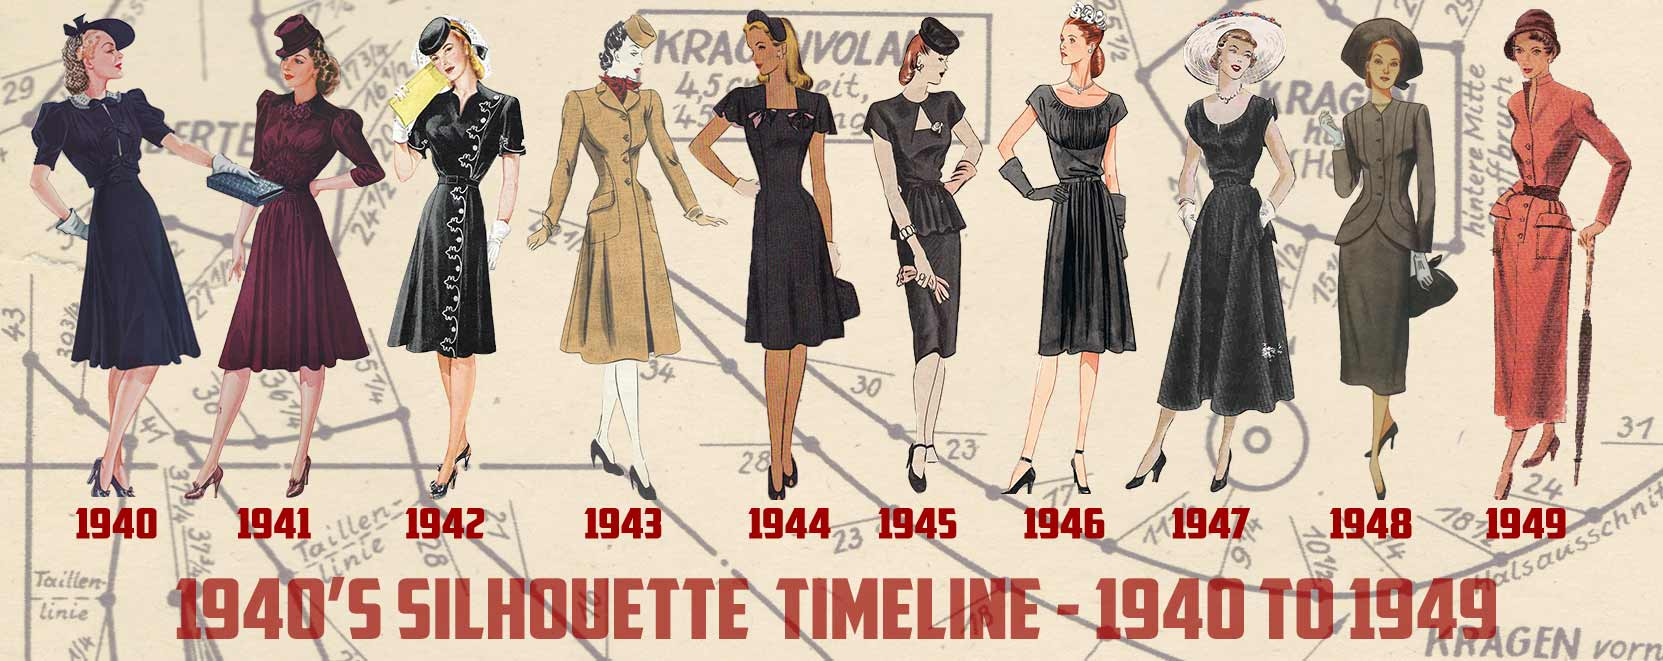 1940 and 1950 style dresses